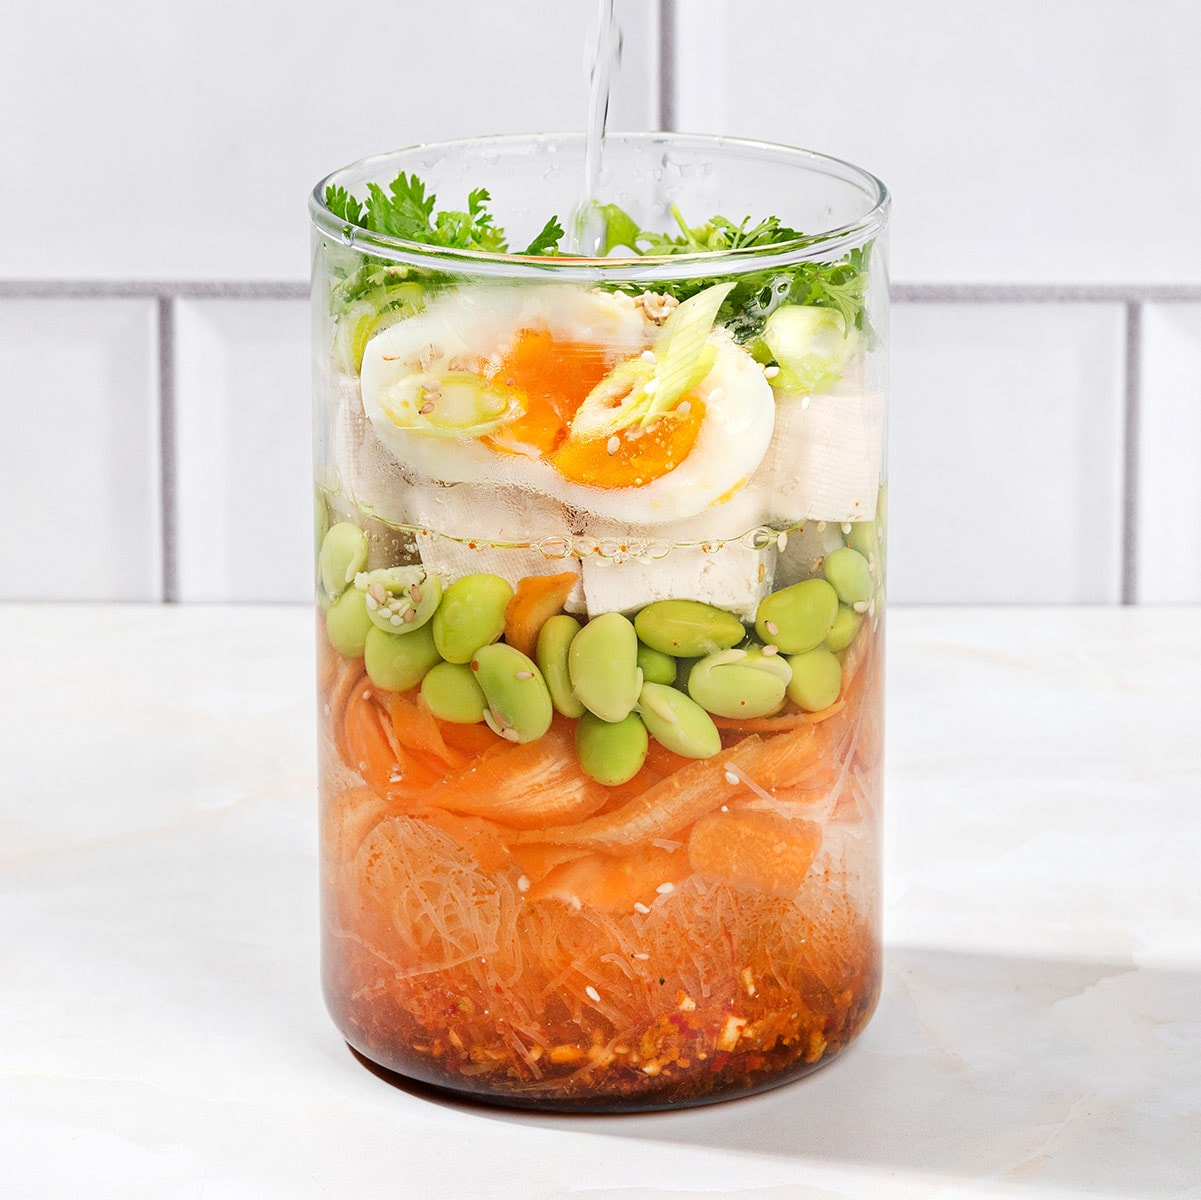 18 Vegetarian Lunch Ideas To Make Your Coworkers Jealous #healthy #vegetarian | hurrythefoodup.com